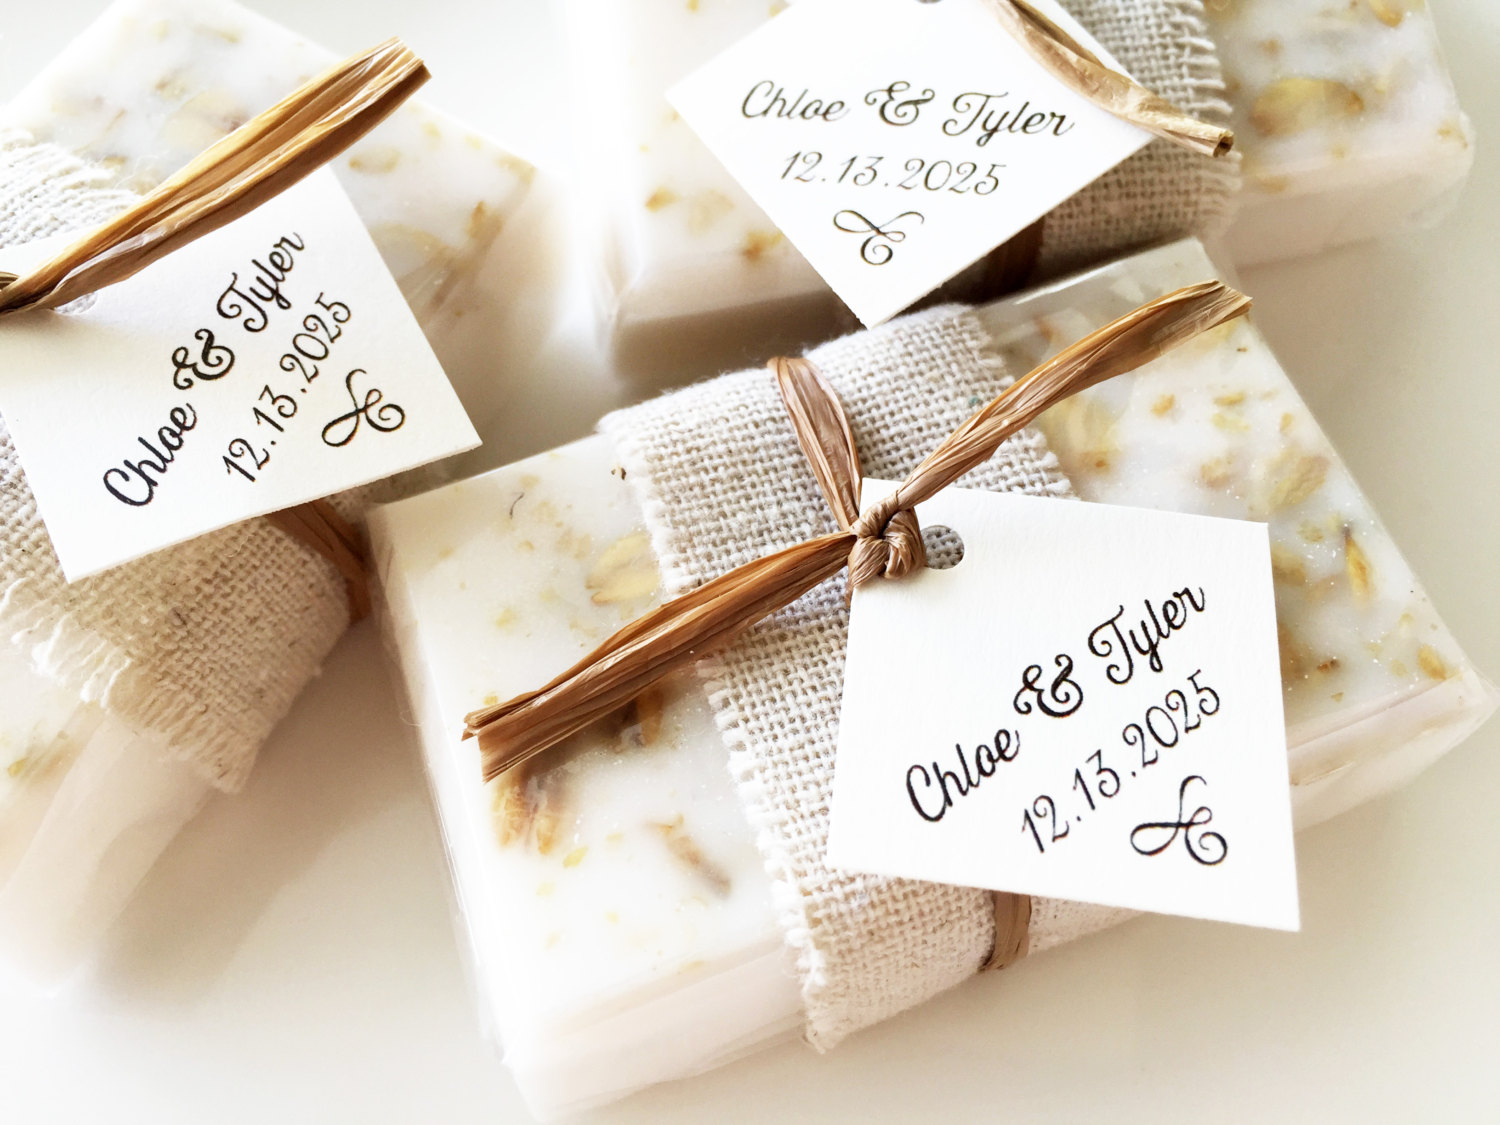 Rustic Wedding Soap Favors, Handmade Favor Soaps.jpg